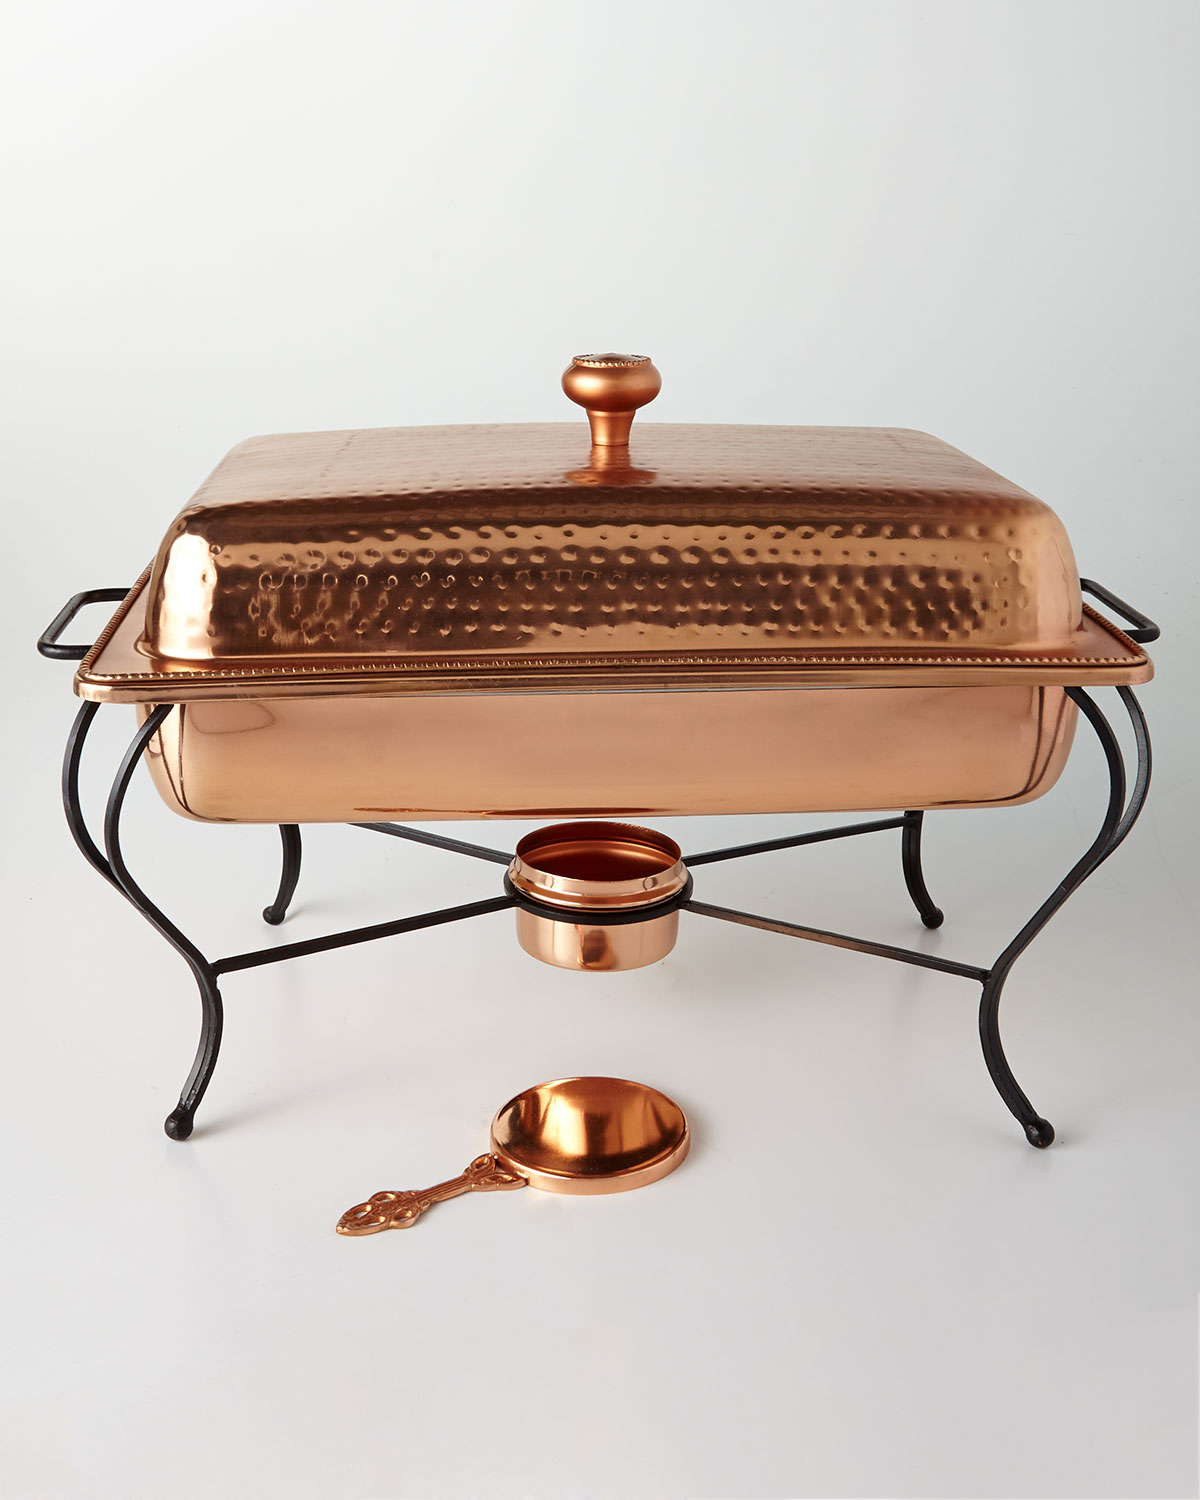 Star Home Designs6 Quart Rectangular Copper Plated Chafing Dish